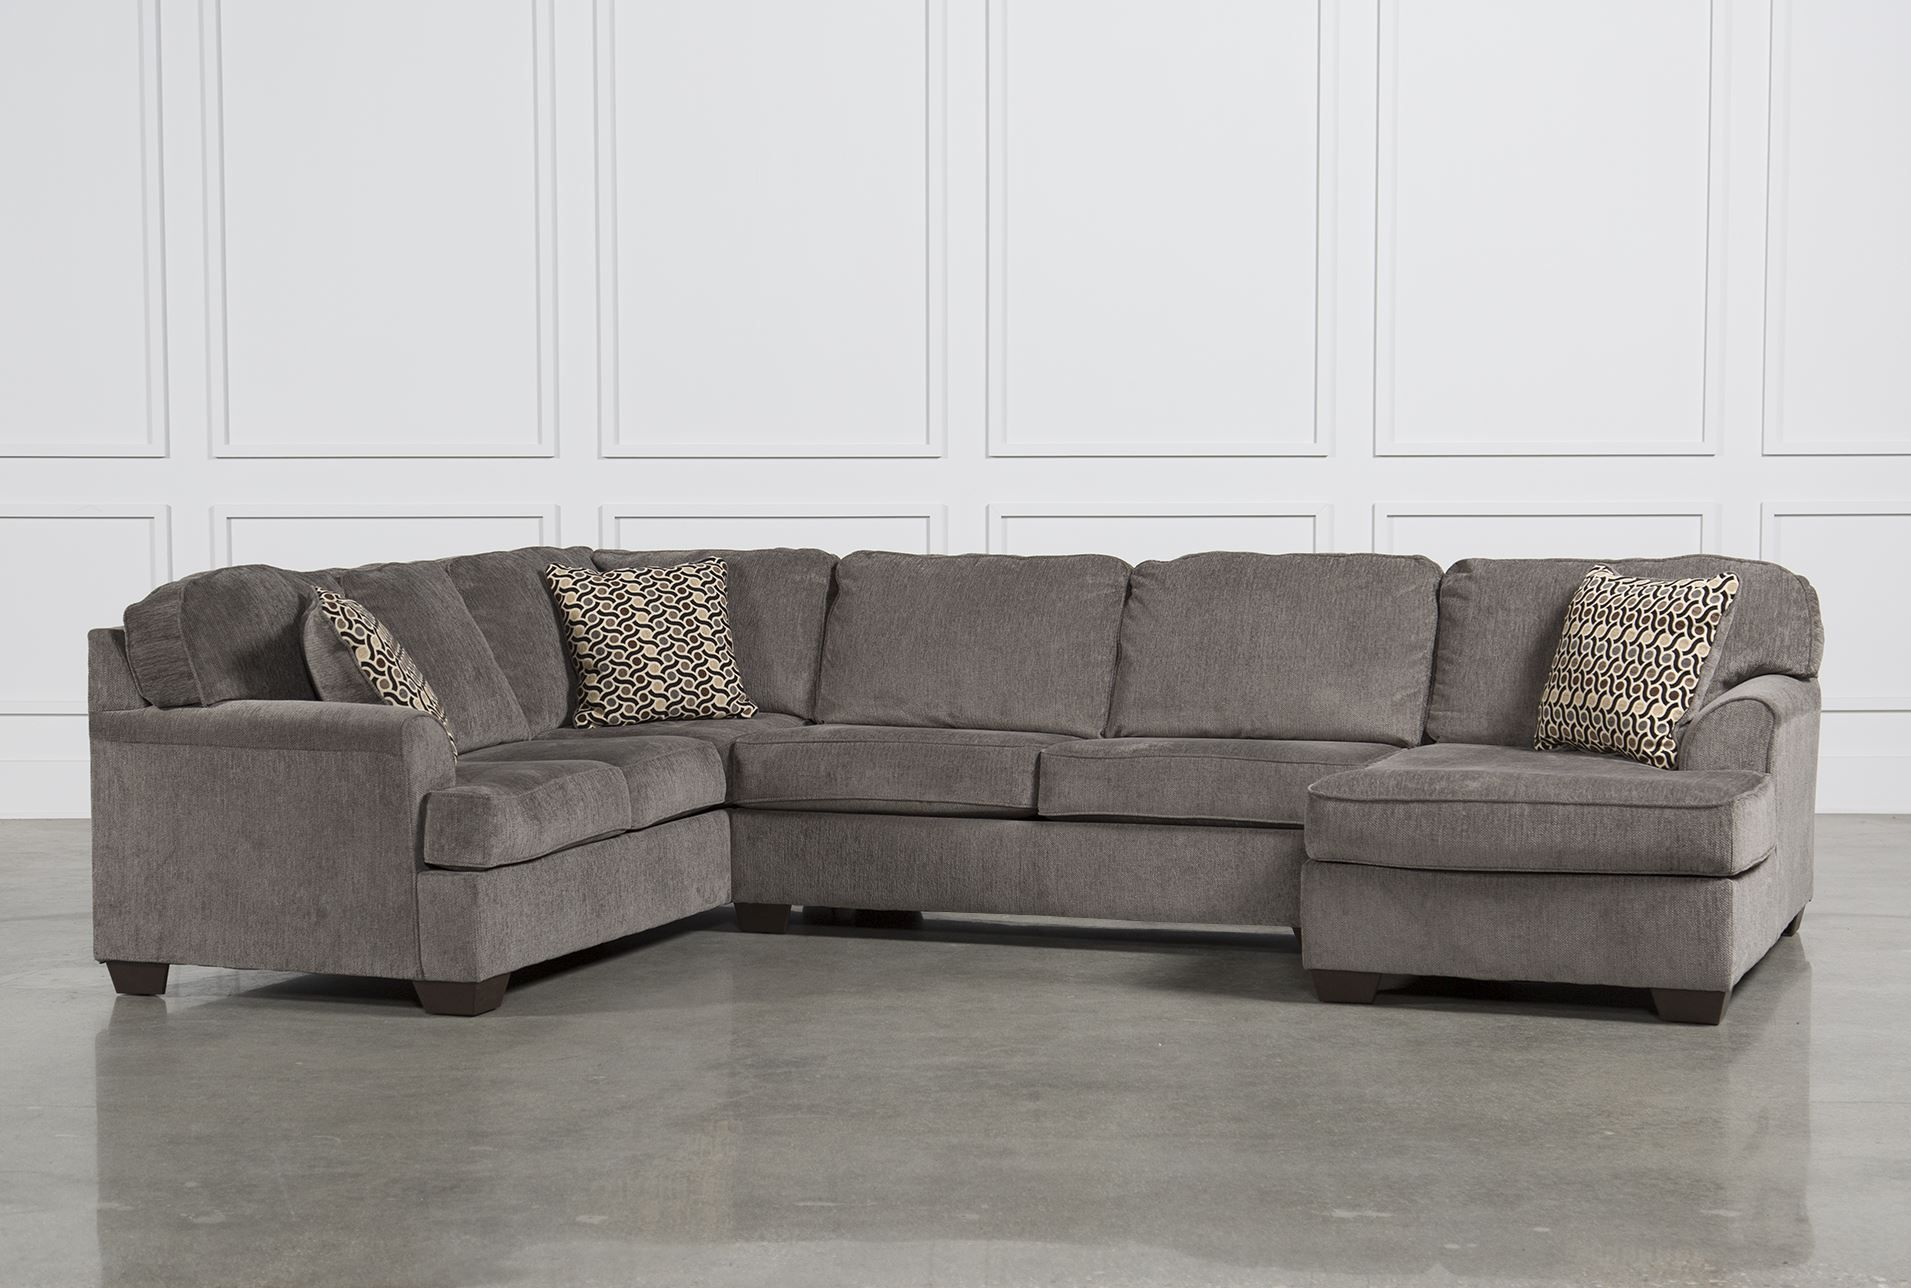 low priced 13559 470d7 Loric Smoke 3 Piece Sectional W/Raf Chaise - SOFA FEATURED ...